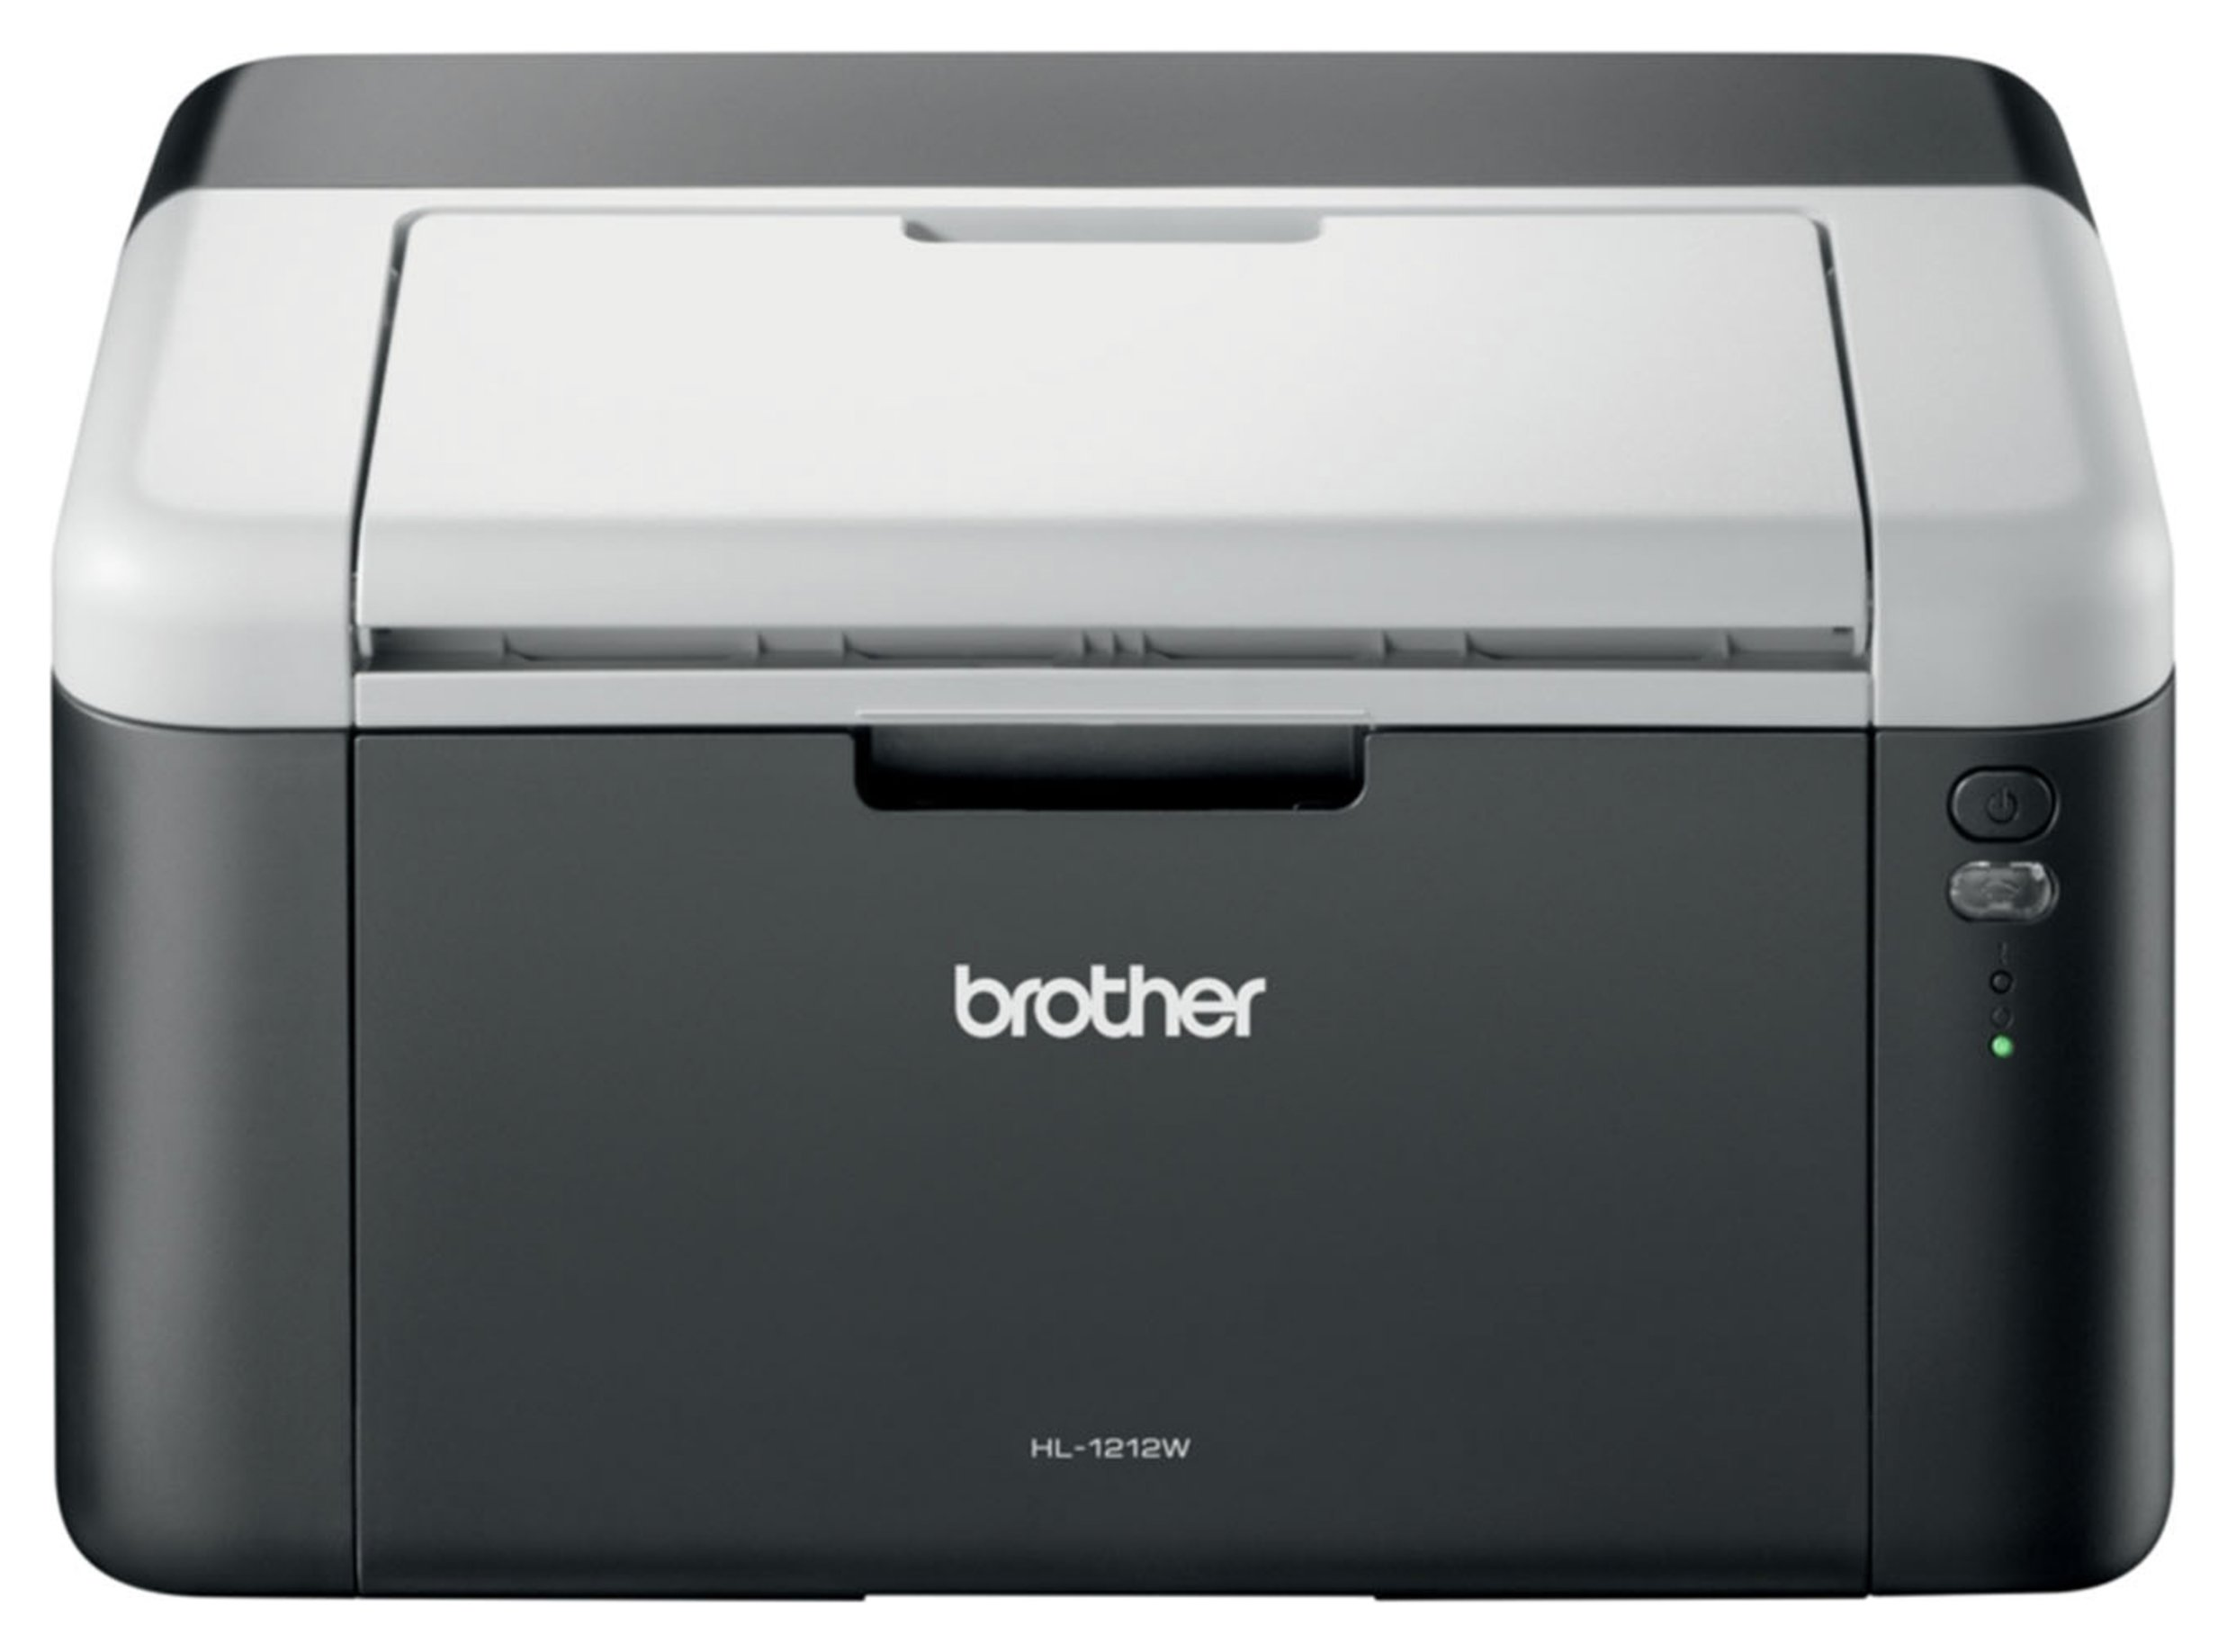 Brother HL-1212 W-Fi Mono Laser Printer